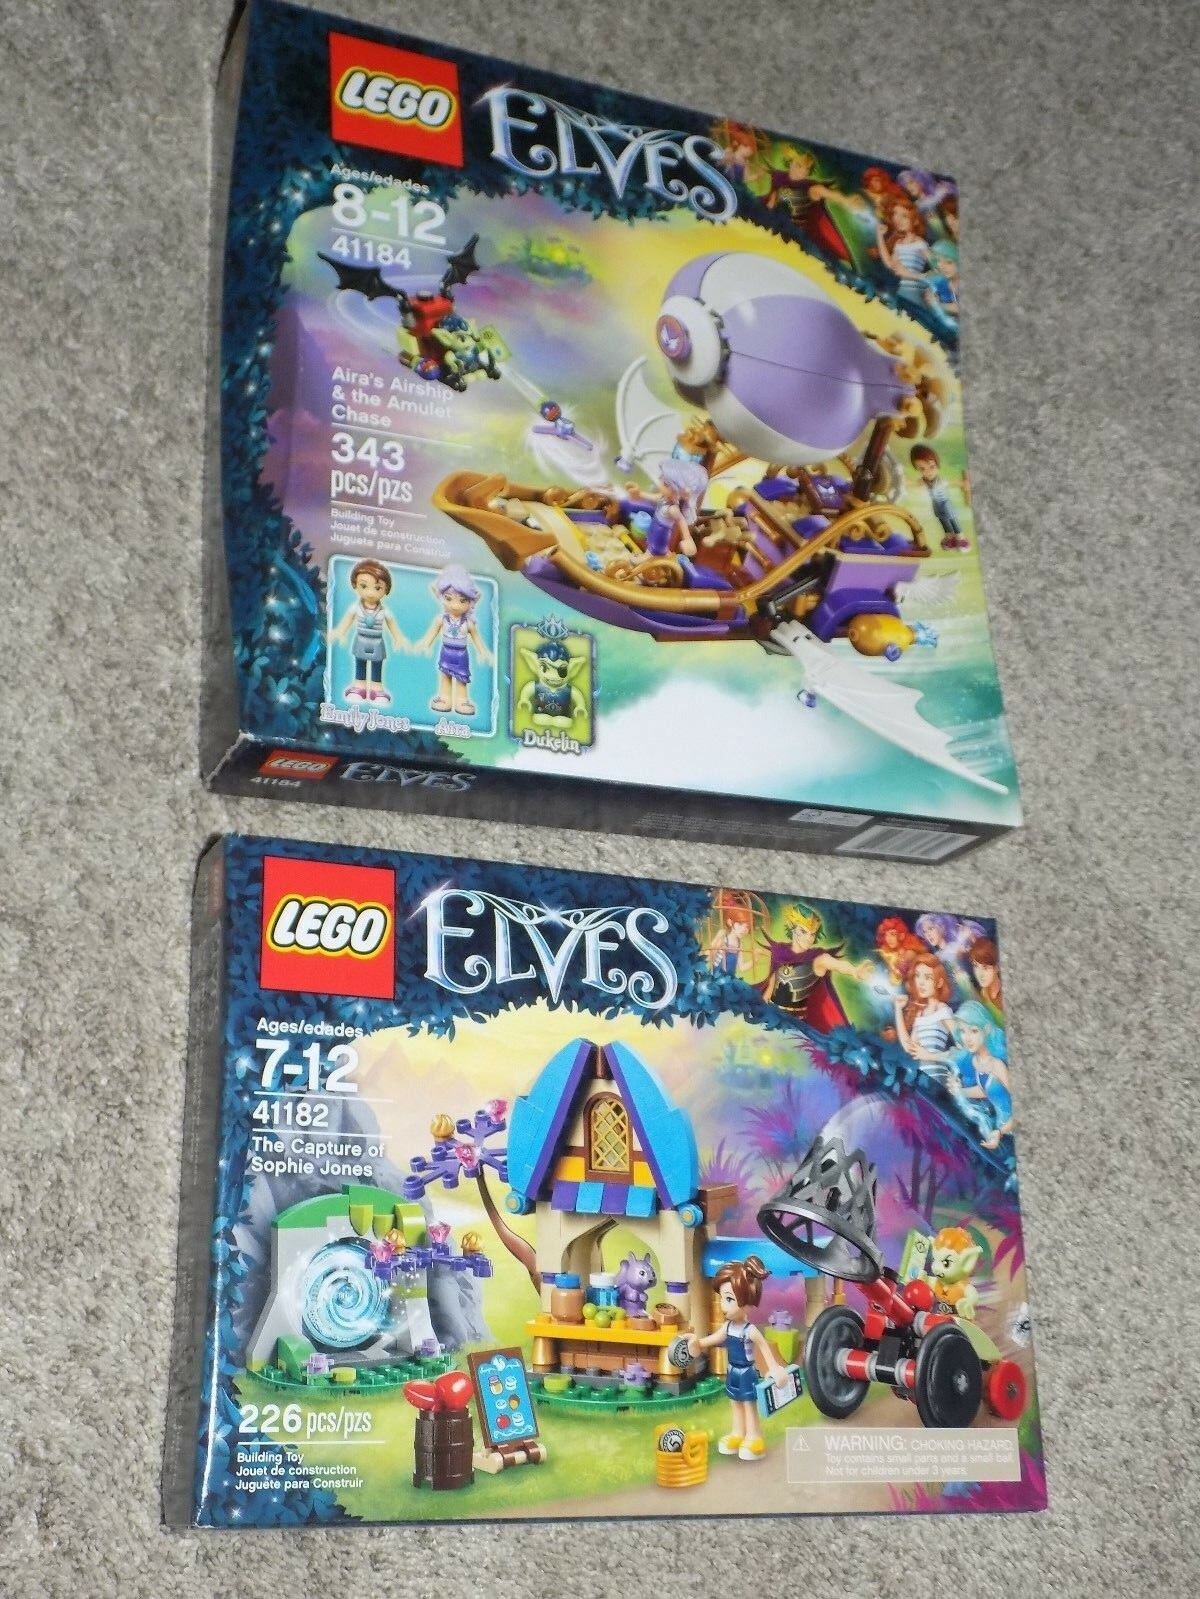 Lego Elves 41182 41184  all new in box